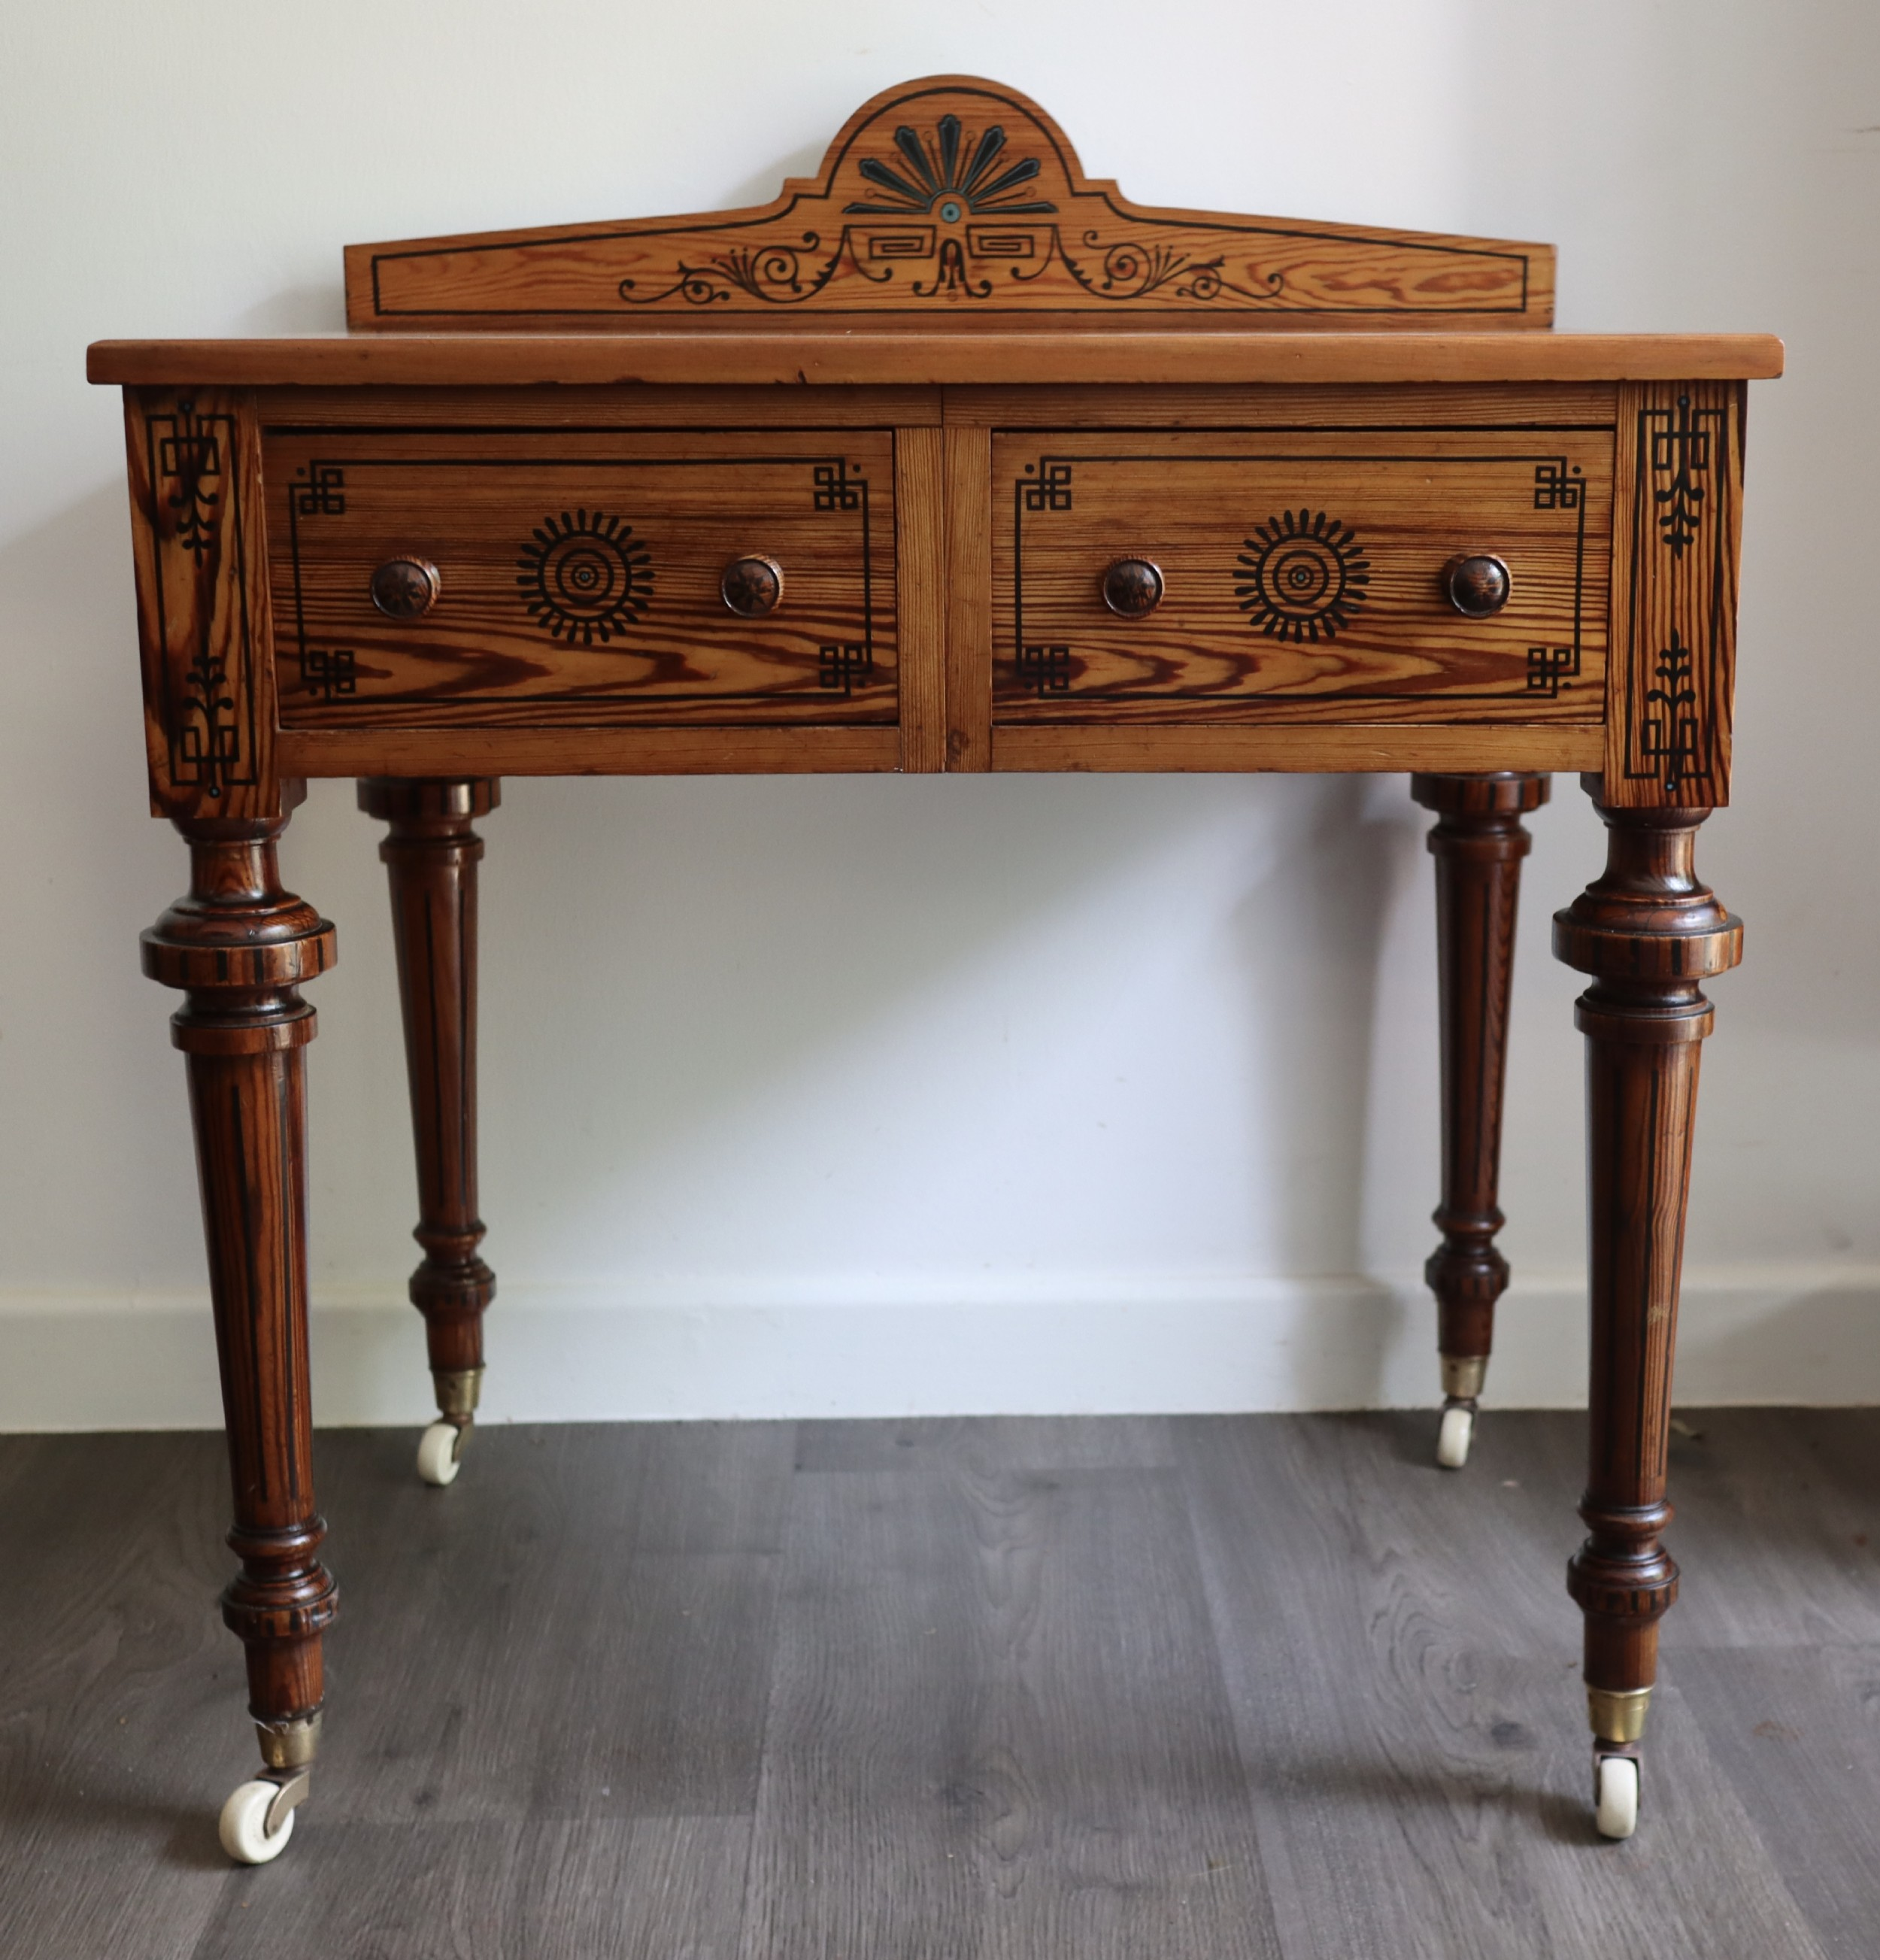 pitch pine highly decorated side table circa 1875